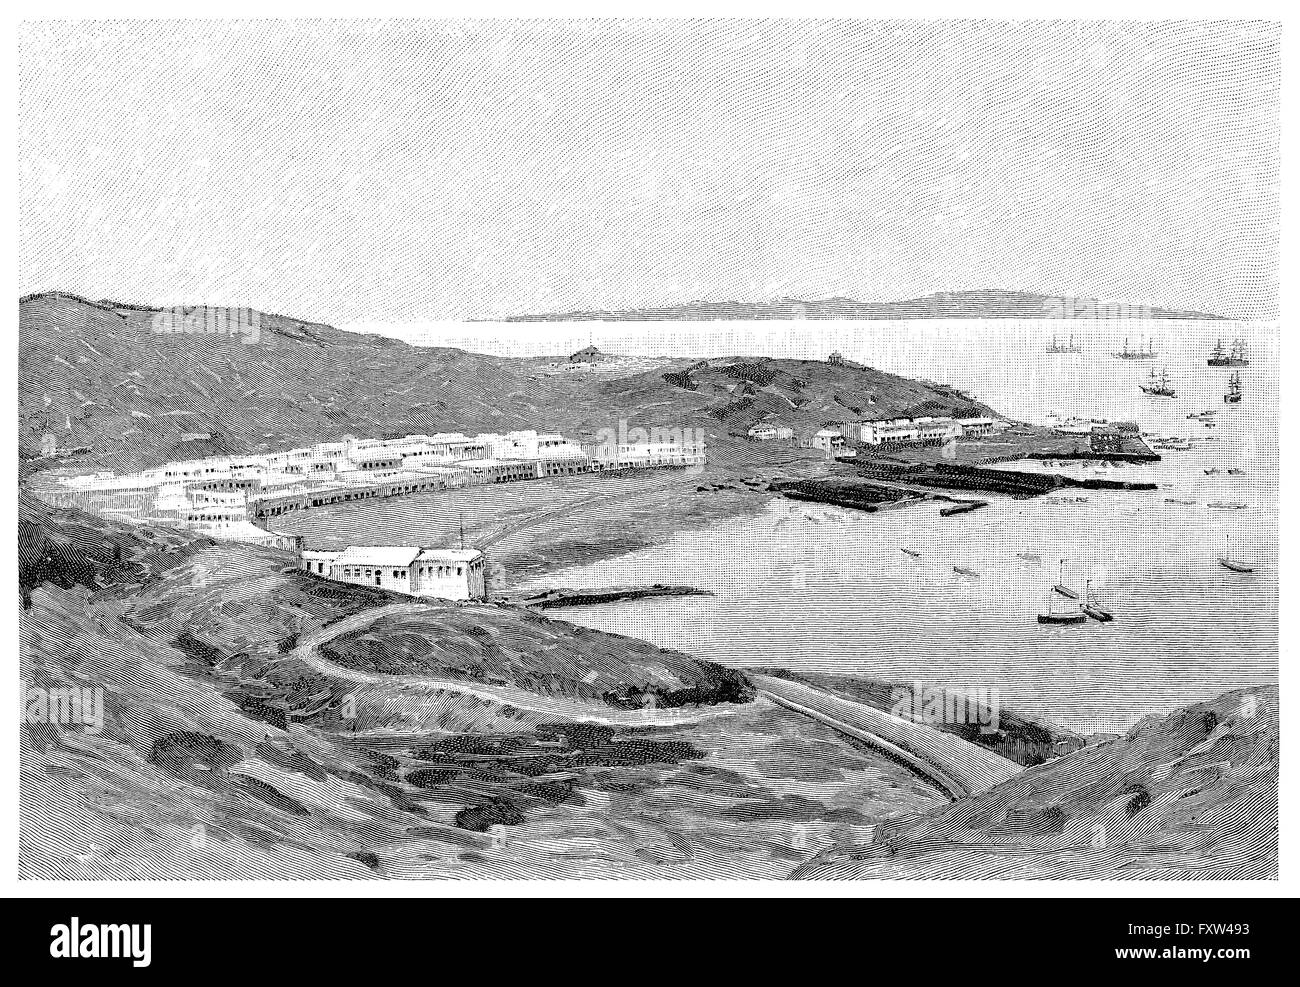 1891 black and white engraving of the port of Aden on the Arabian peninsula in what is now Yemen. - Stock Image